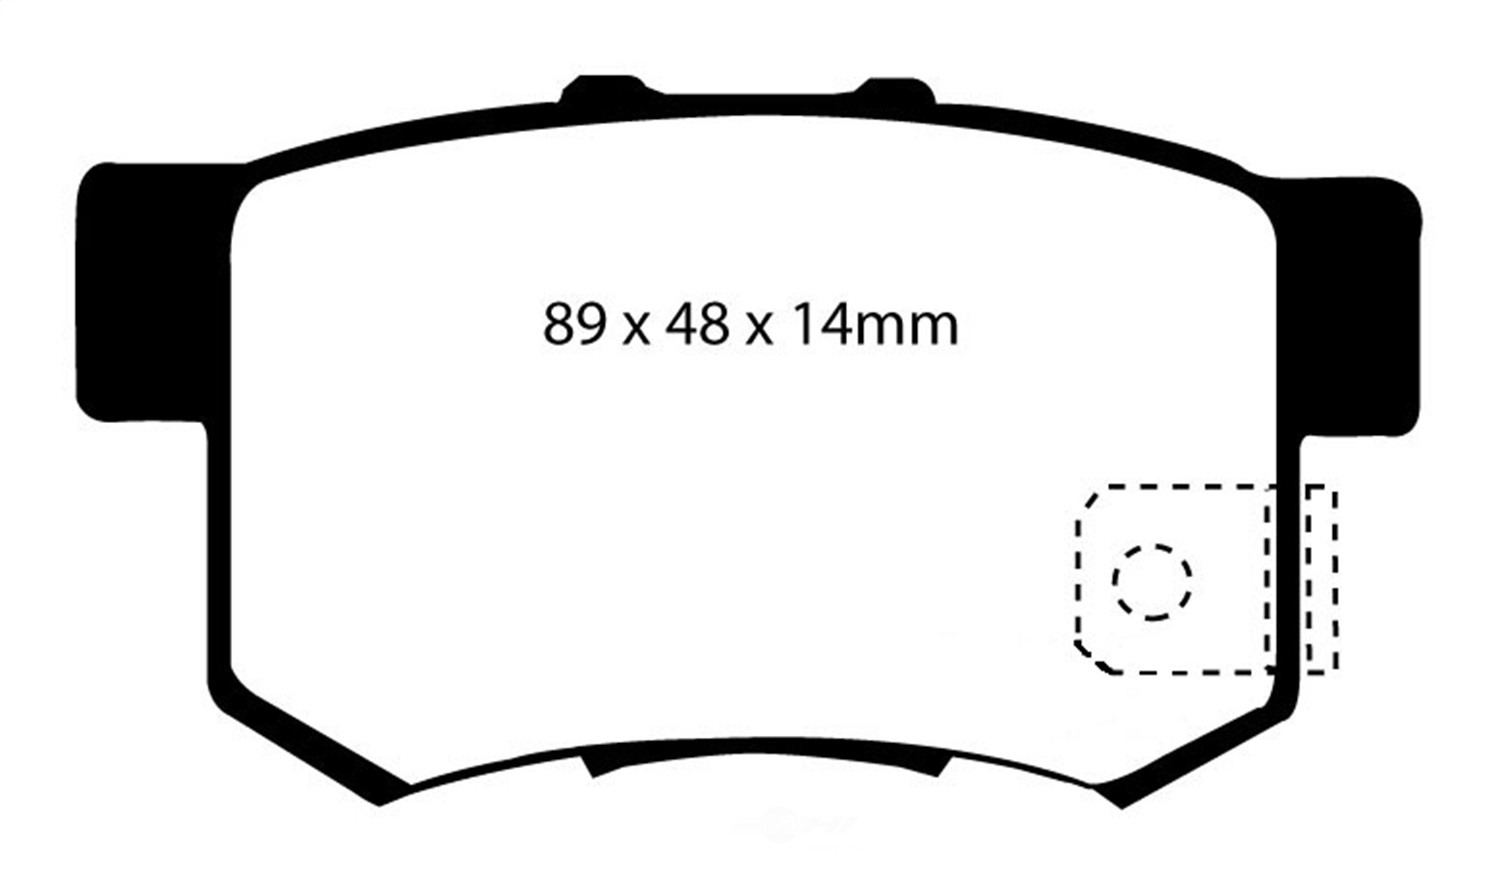 EBC BRAKES - EBC Greenstuff 2000 Series Sport Disc Brake Pad (Rear) - XHG DP21193